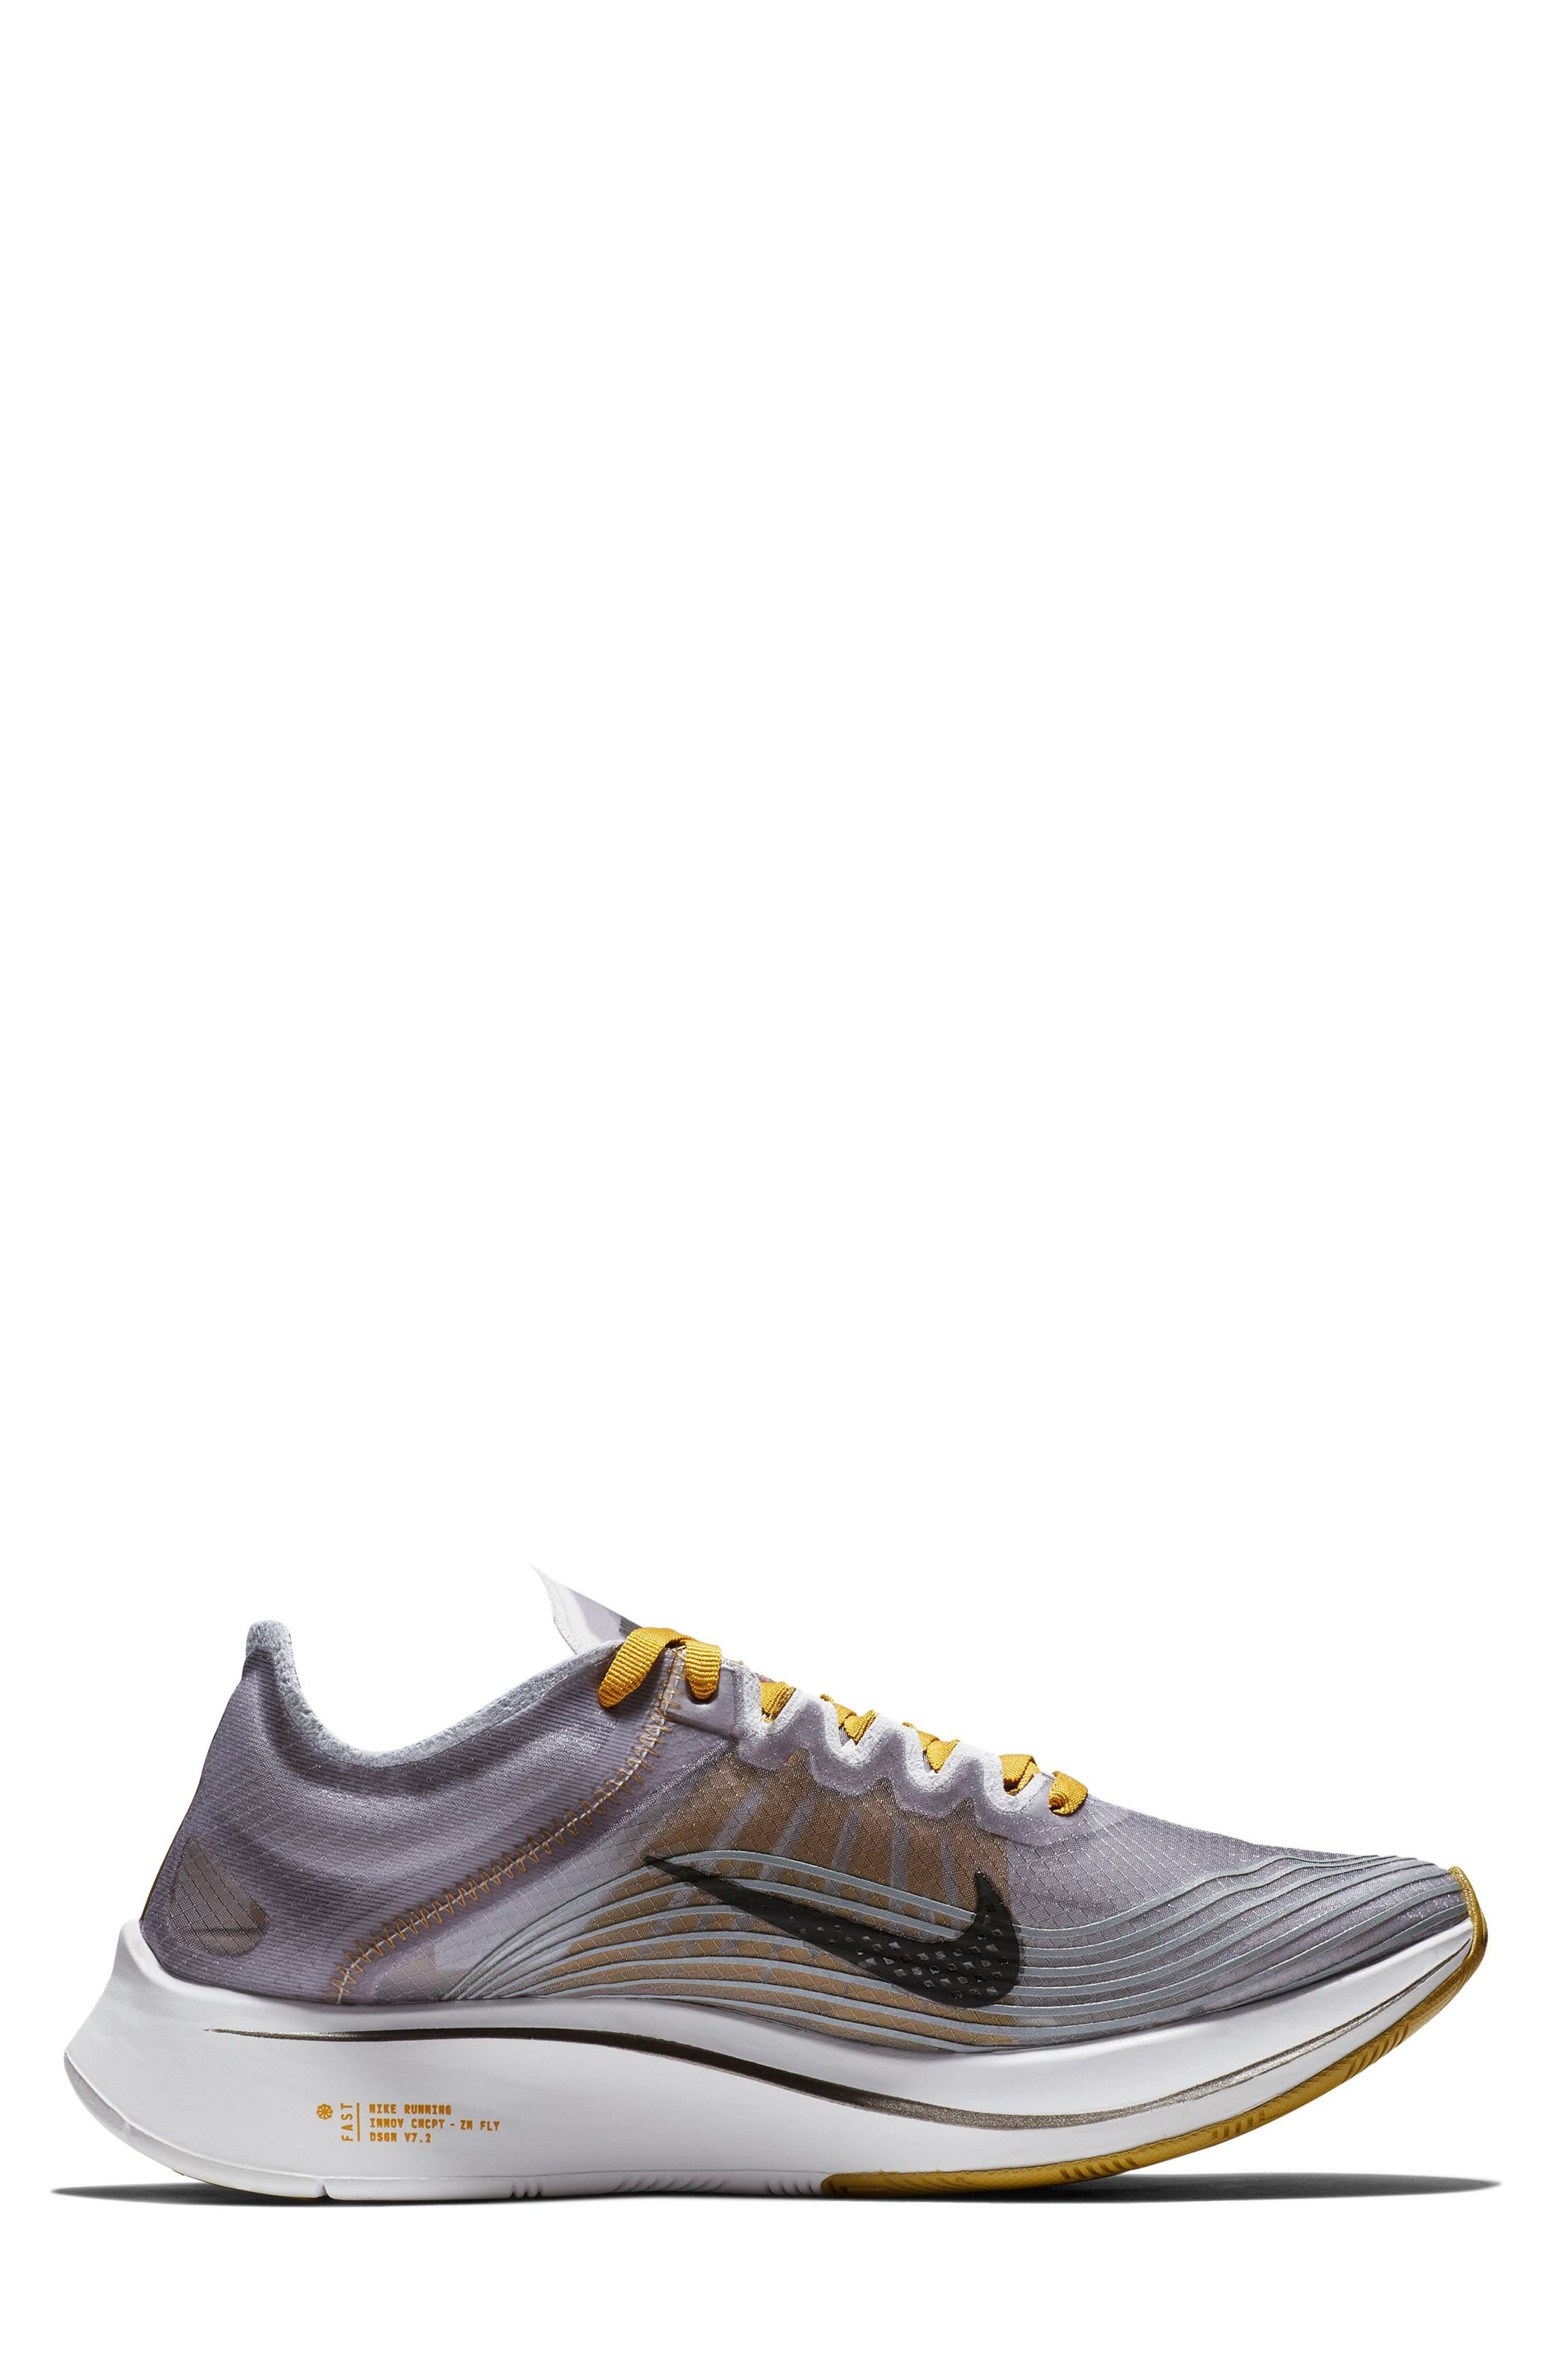 Zoom Fly SP Running Shoe,                             Alternate thumbnail 6, color,                             BLACK/ PEAT MOSS/ WHITE